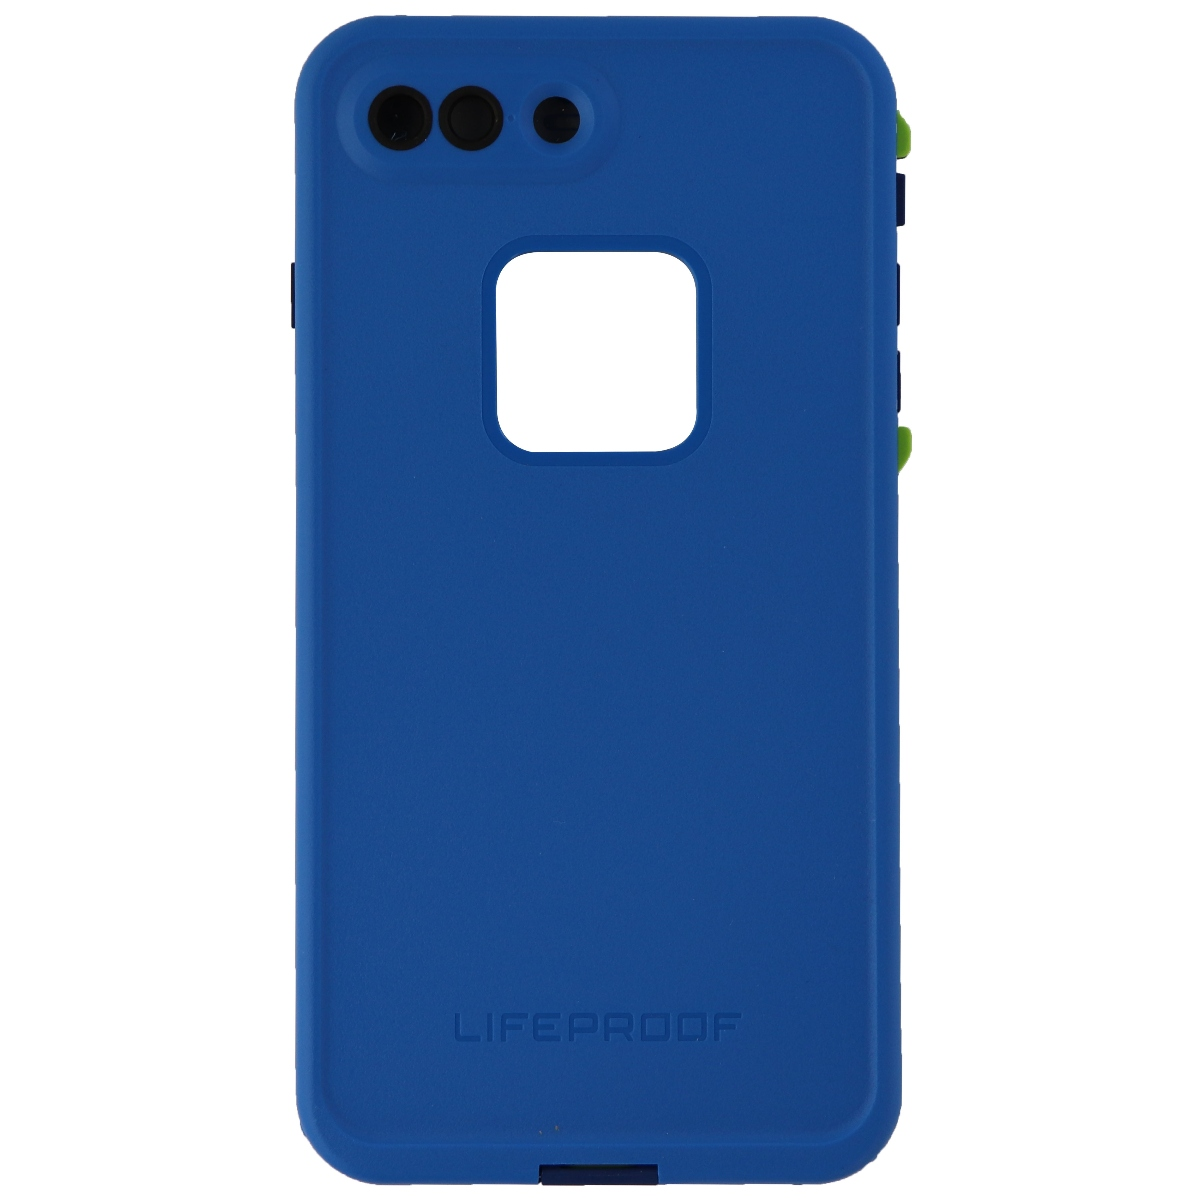 LifeProof Fre Series Protective Case Cover for iPhone 8 Plus 7 Plus - Blue Green